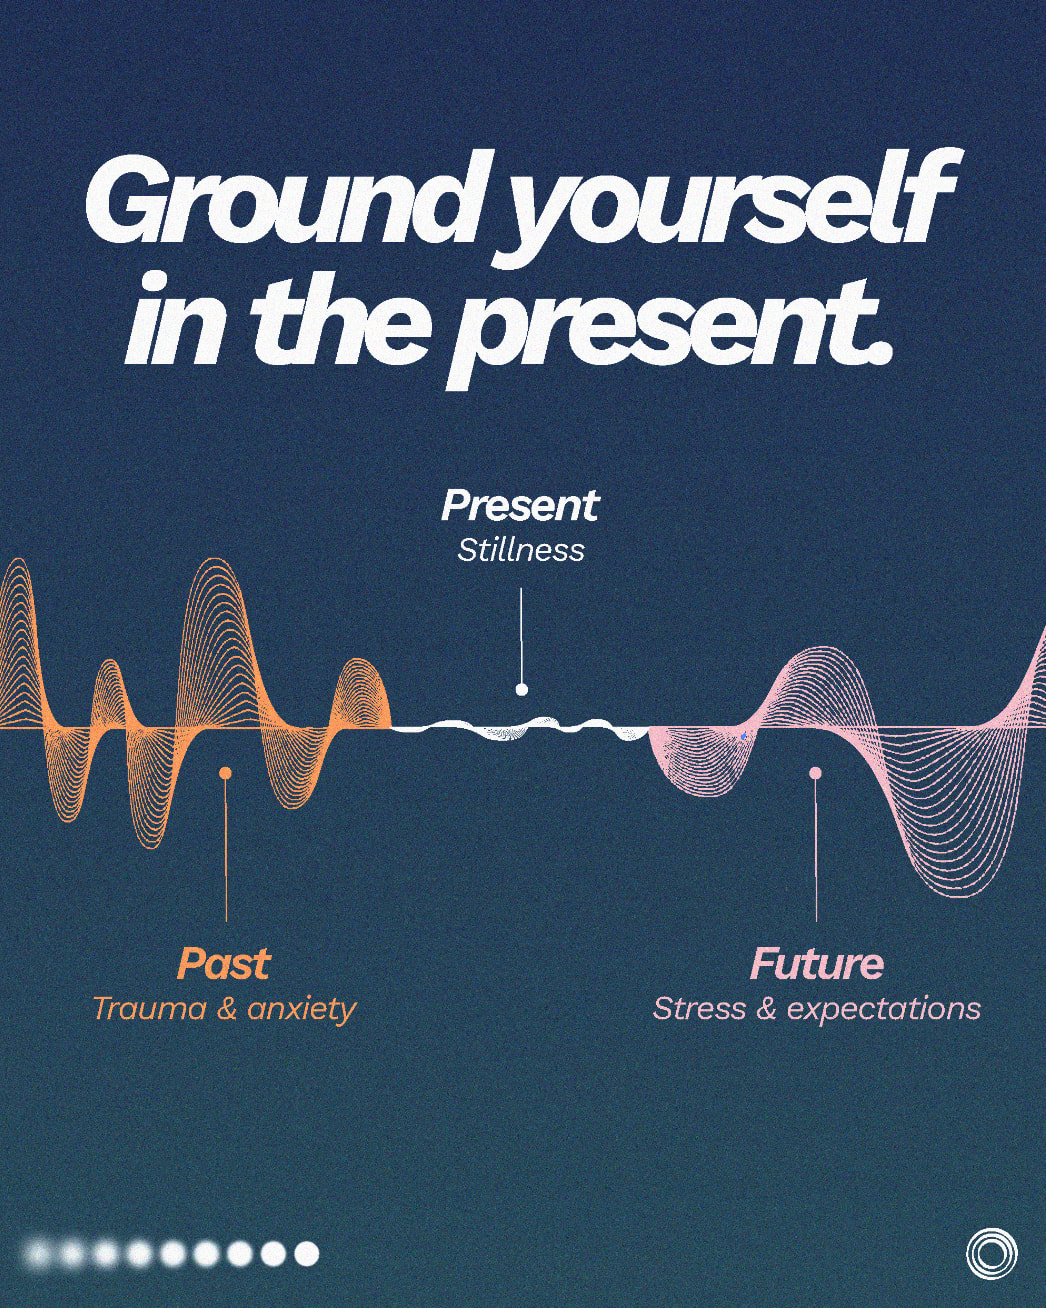 Stillness is presence. The image shows past and future noise with a stable present